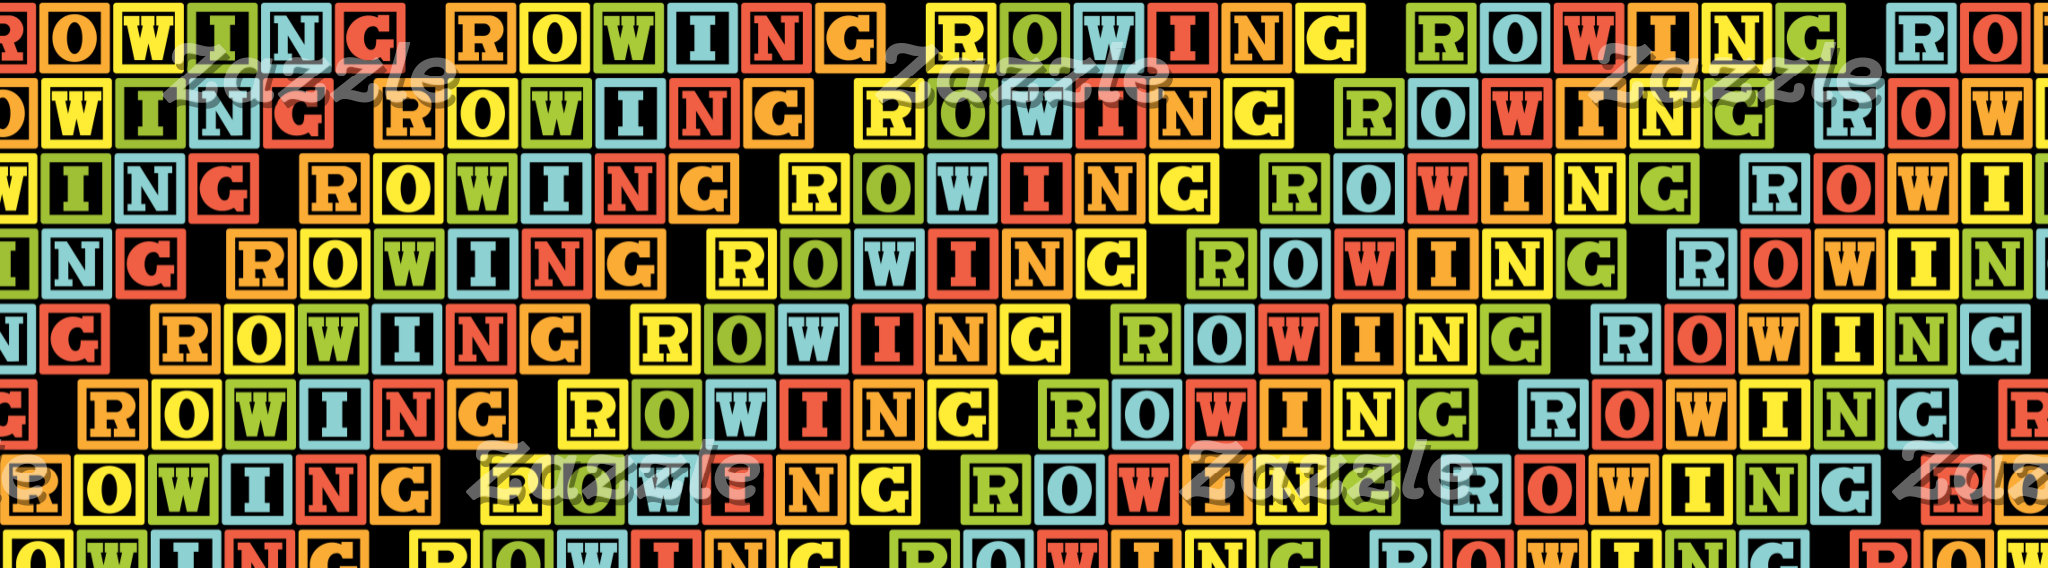 ROWING lettering